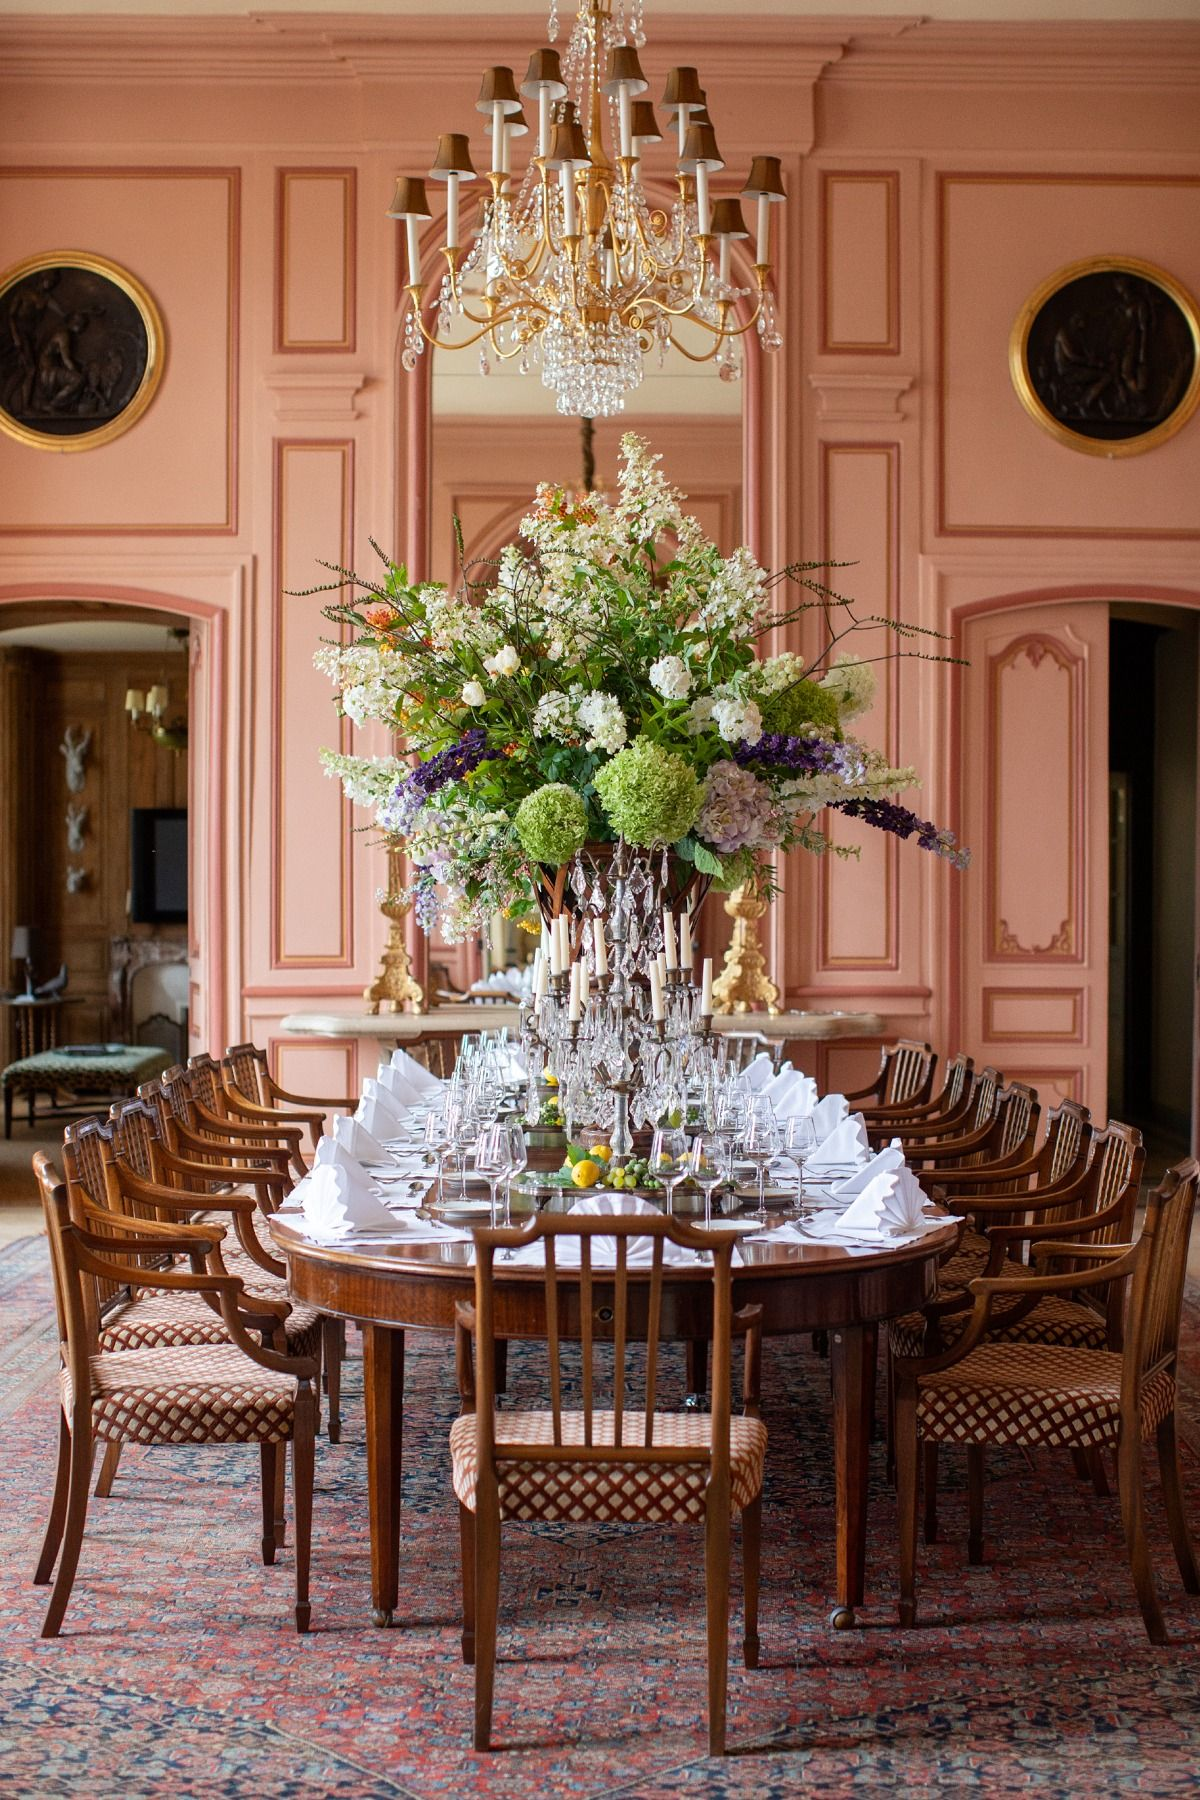 Chateau Du Grand Luce Peony Lim In 2020 French Chateau Interiors Chateaux Interiors Luxury Rooms